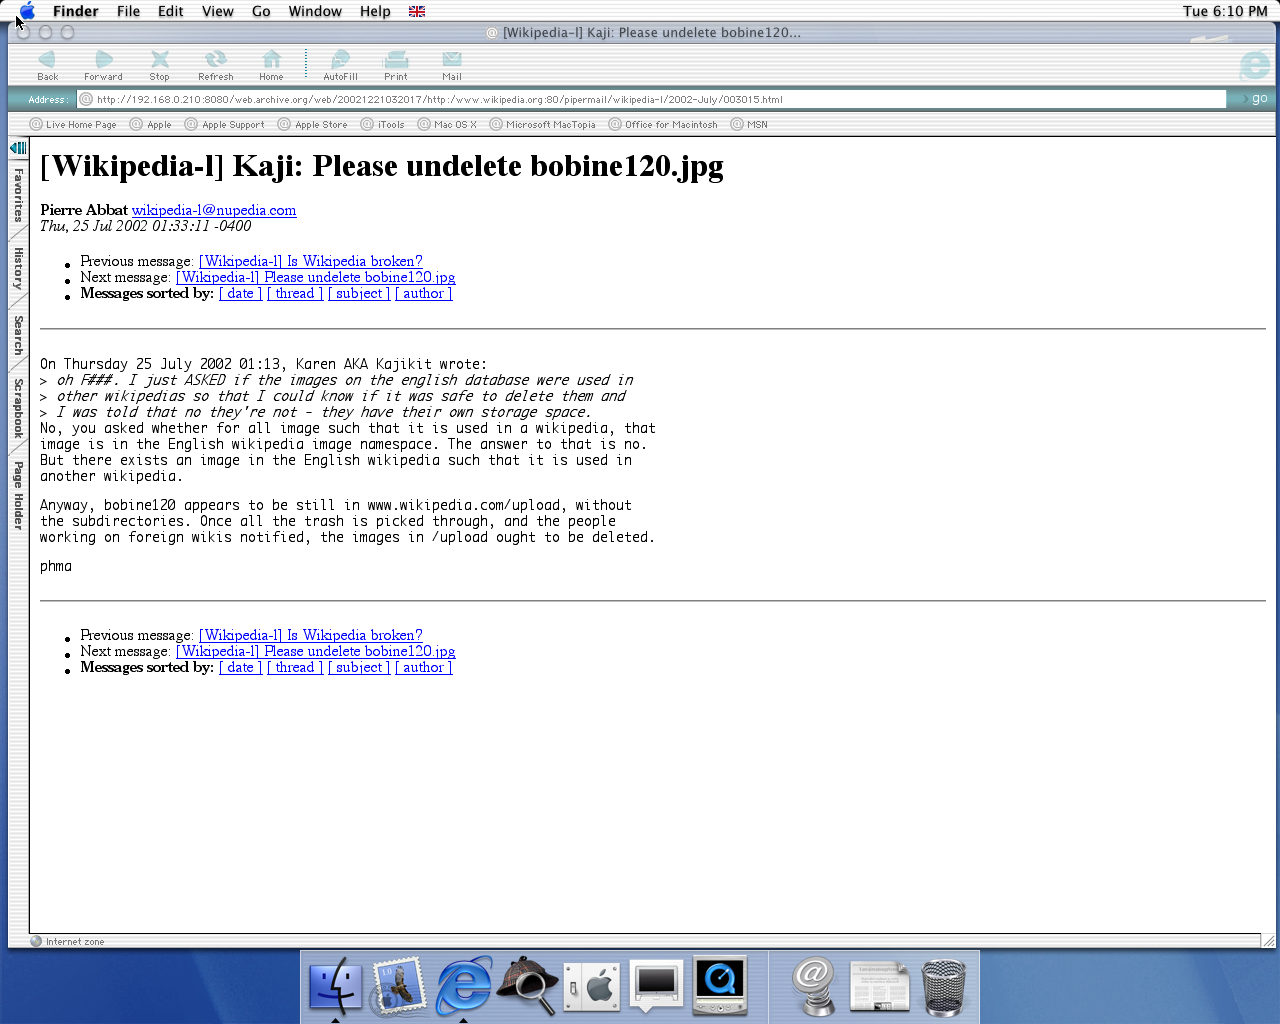 OS X 10.0 PPC with Microsoft Internet Explorer 5.1 for Mac Preview displaying a page from Wikipedia.org archived at December 21, 2002 at 03:20:17